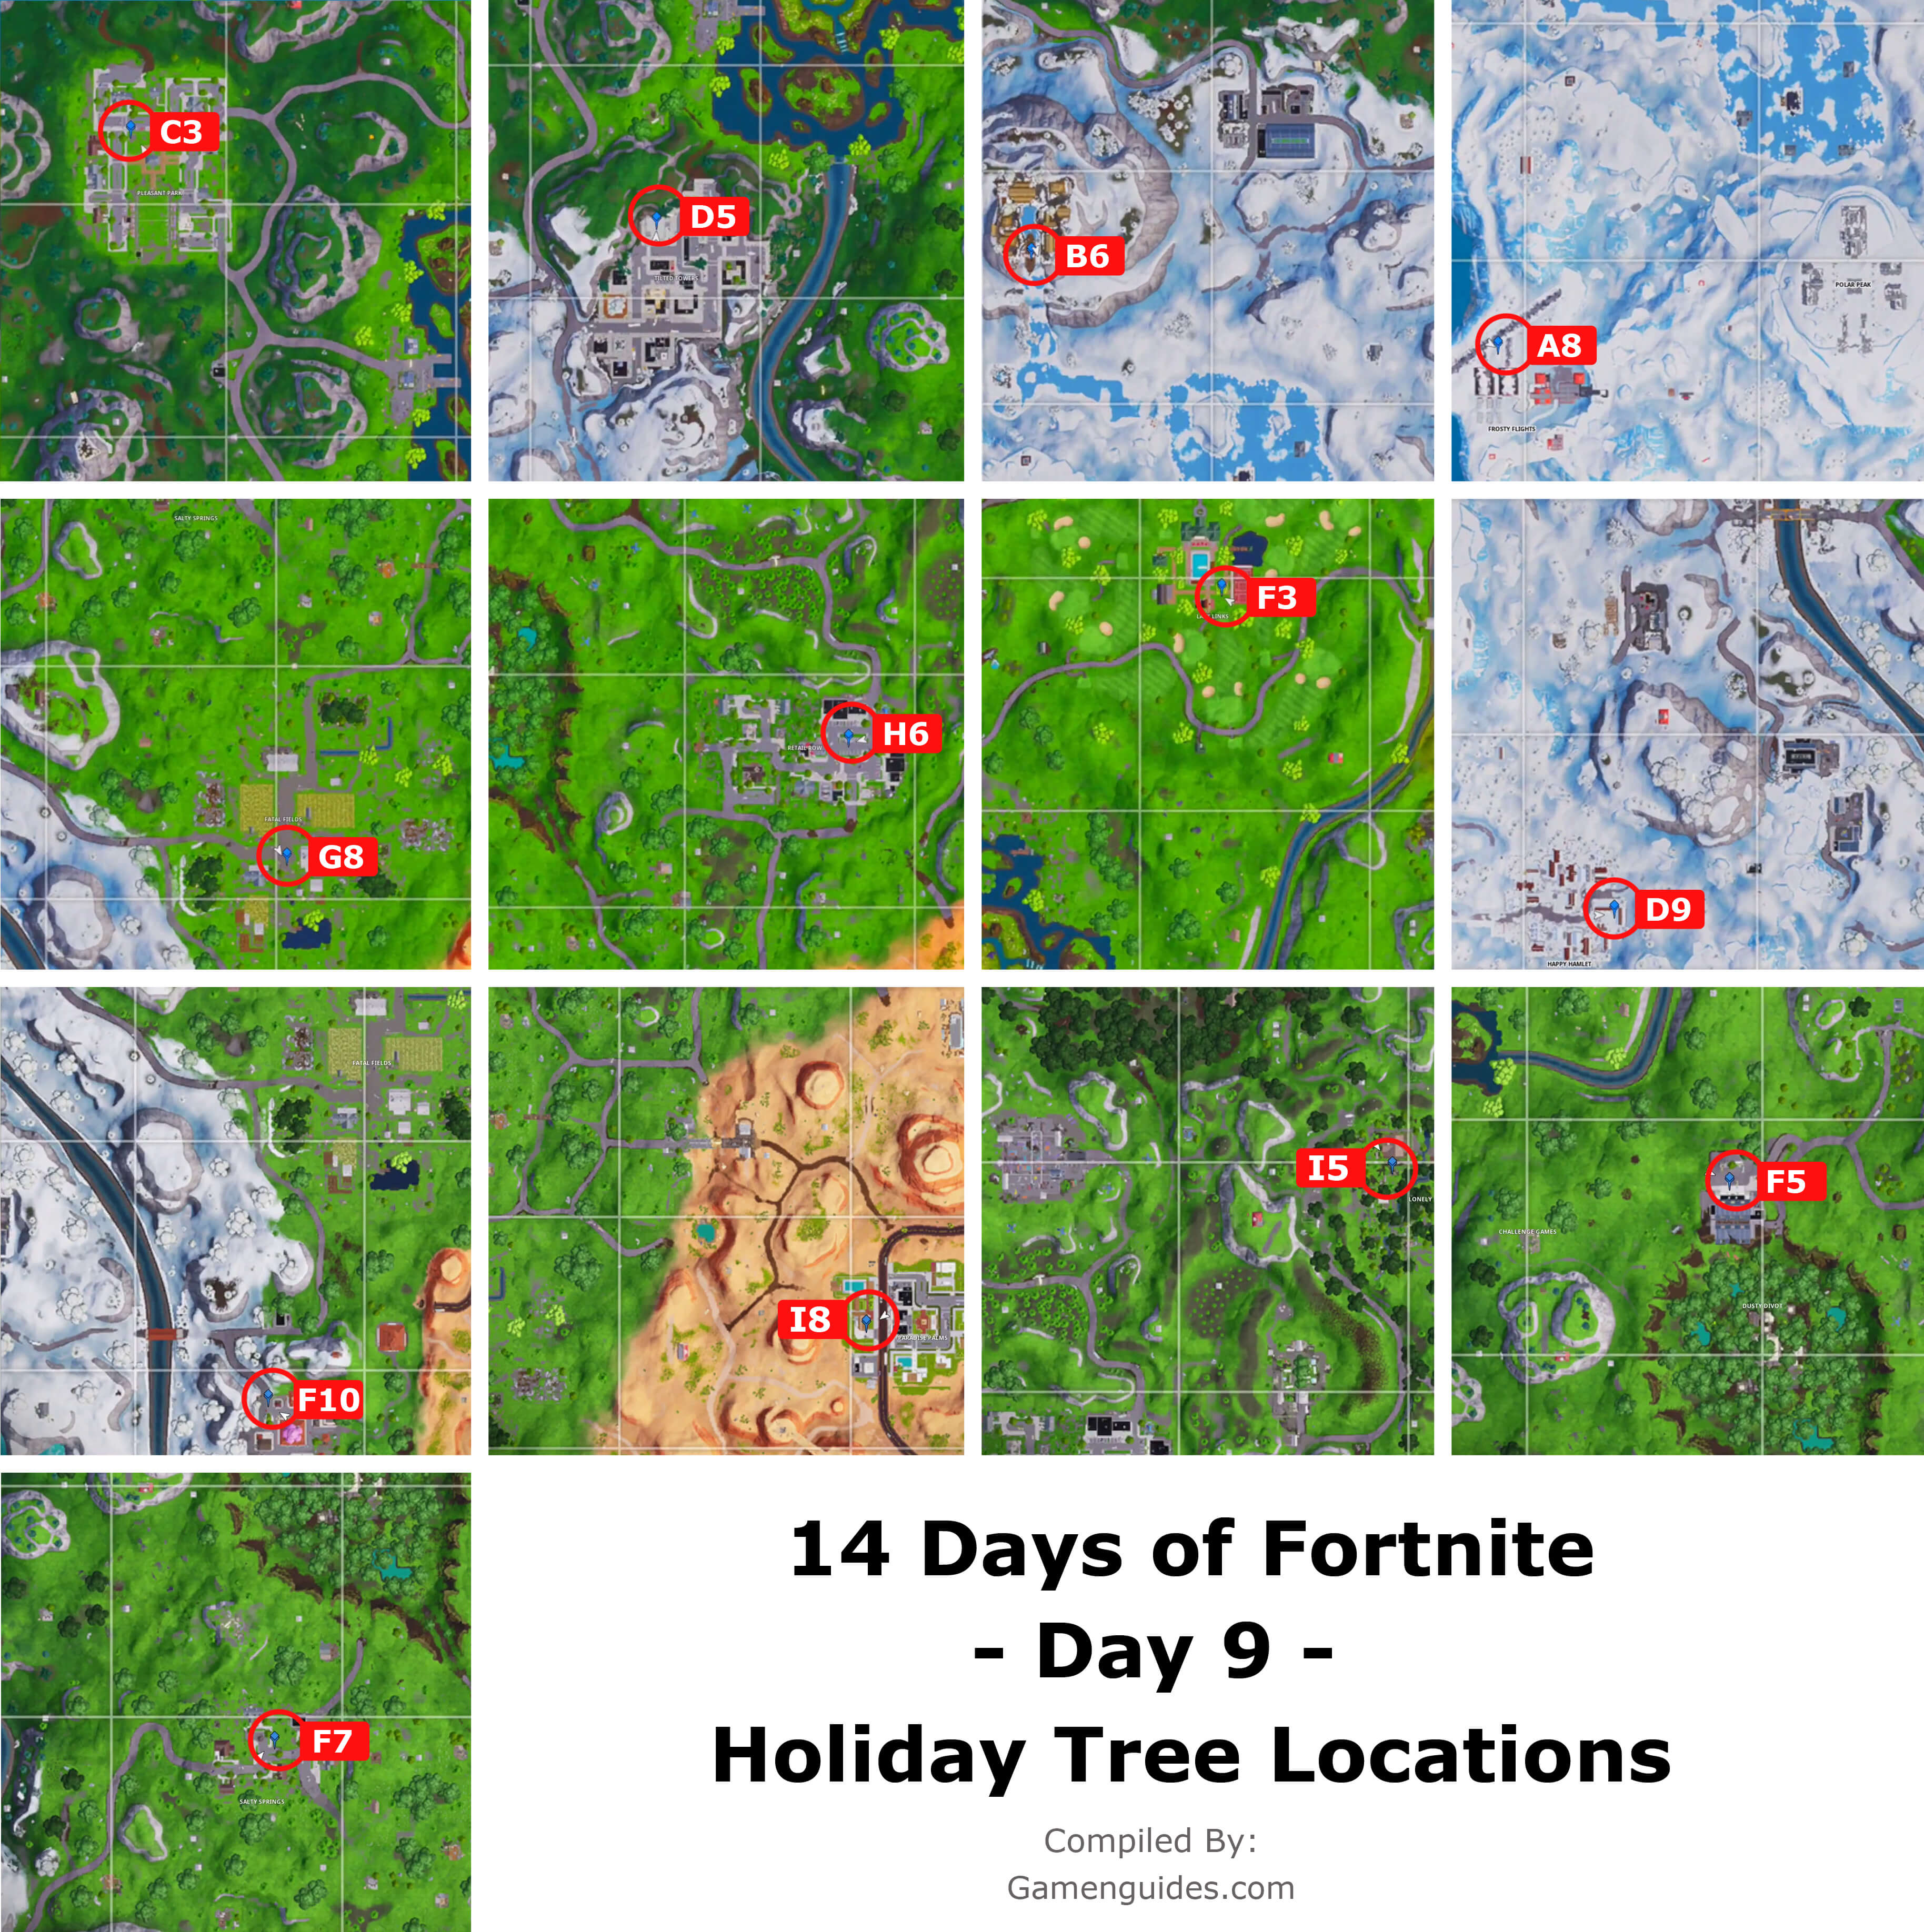 All Christmas Tree Locations Fortnite.Us Retailers Hope Higher Pay Will Buy More Efficient Workers